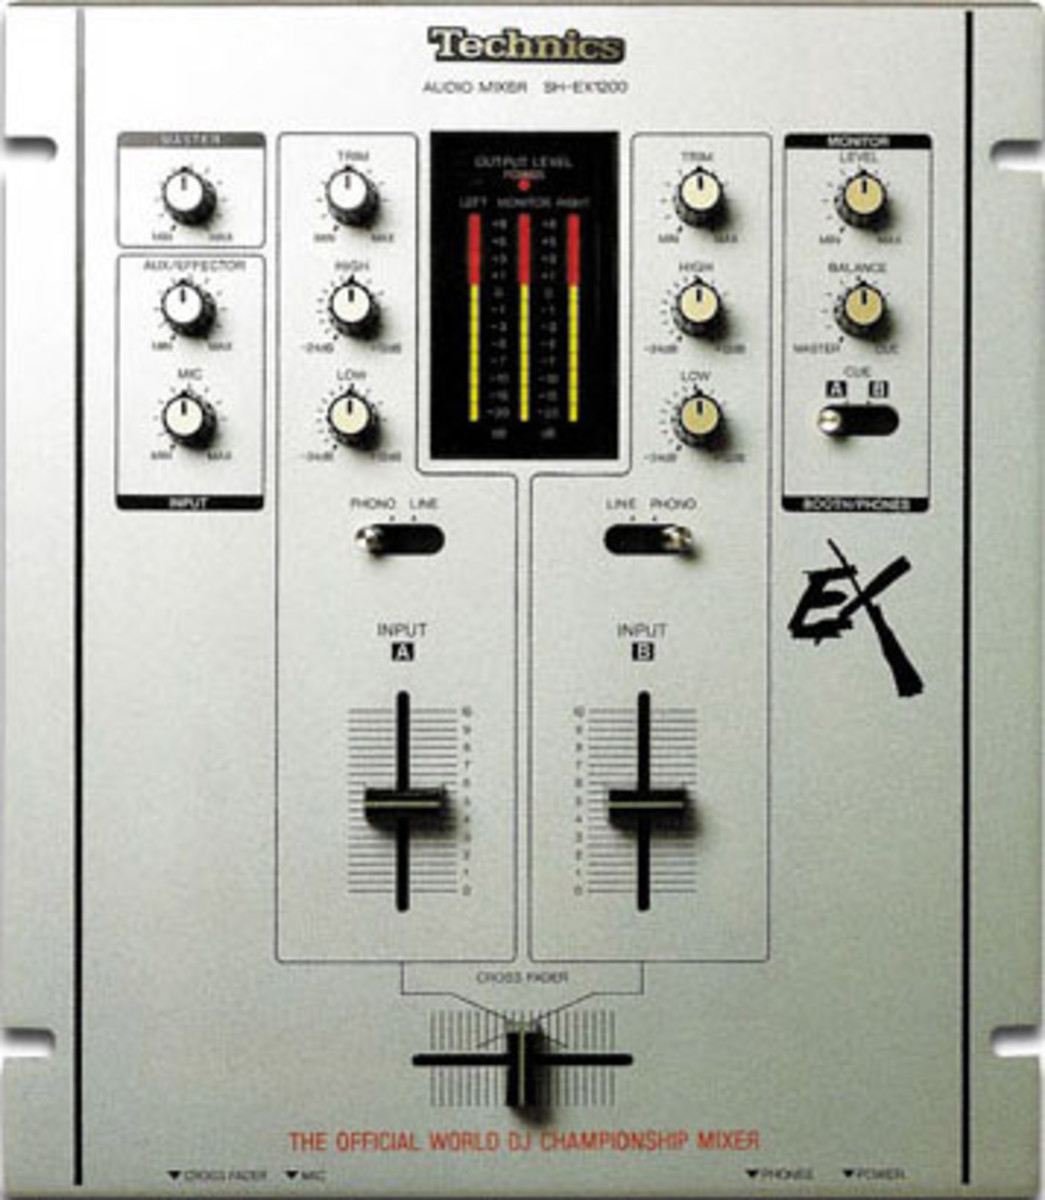 A basic mixer with a crossfader at the bottom, two volume faders, and eqs.